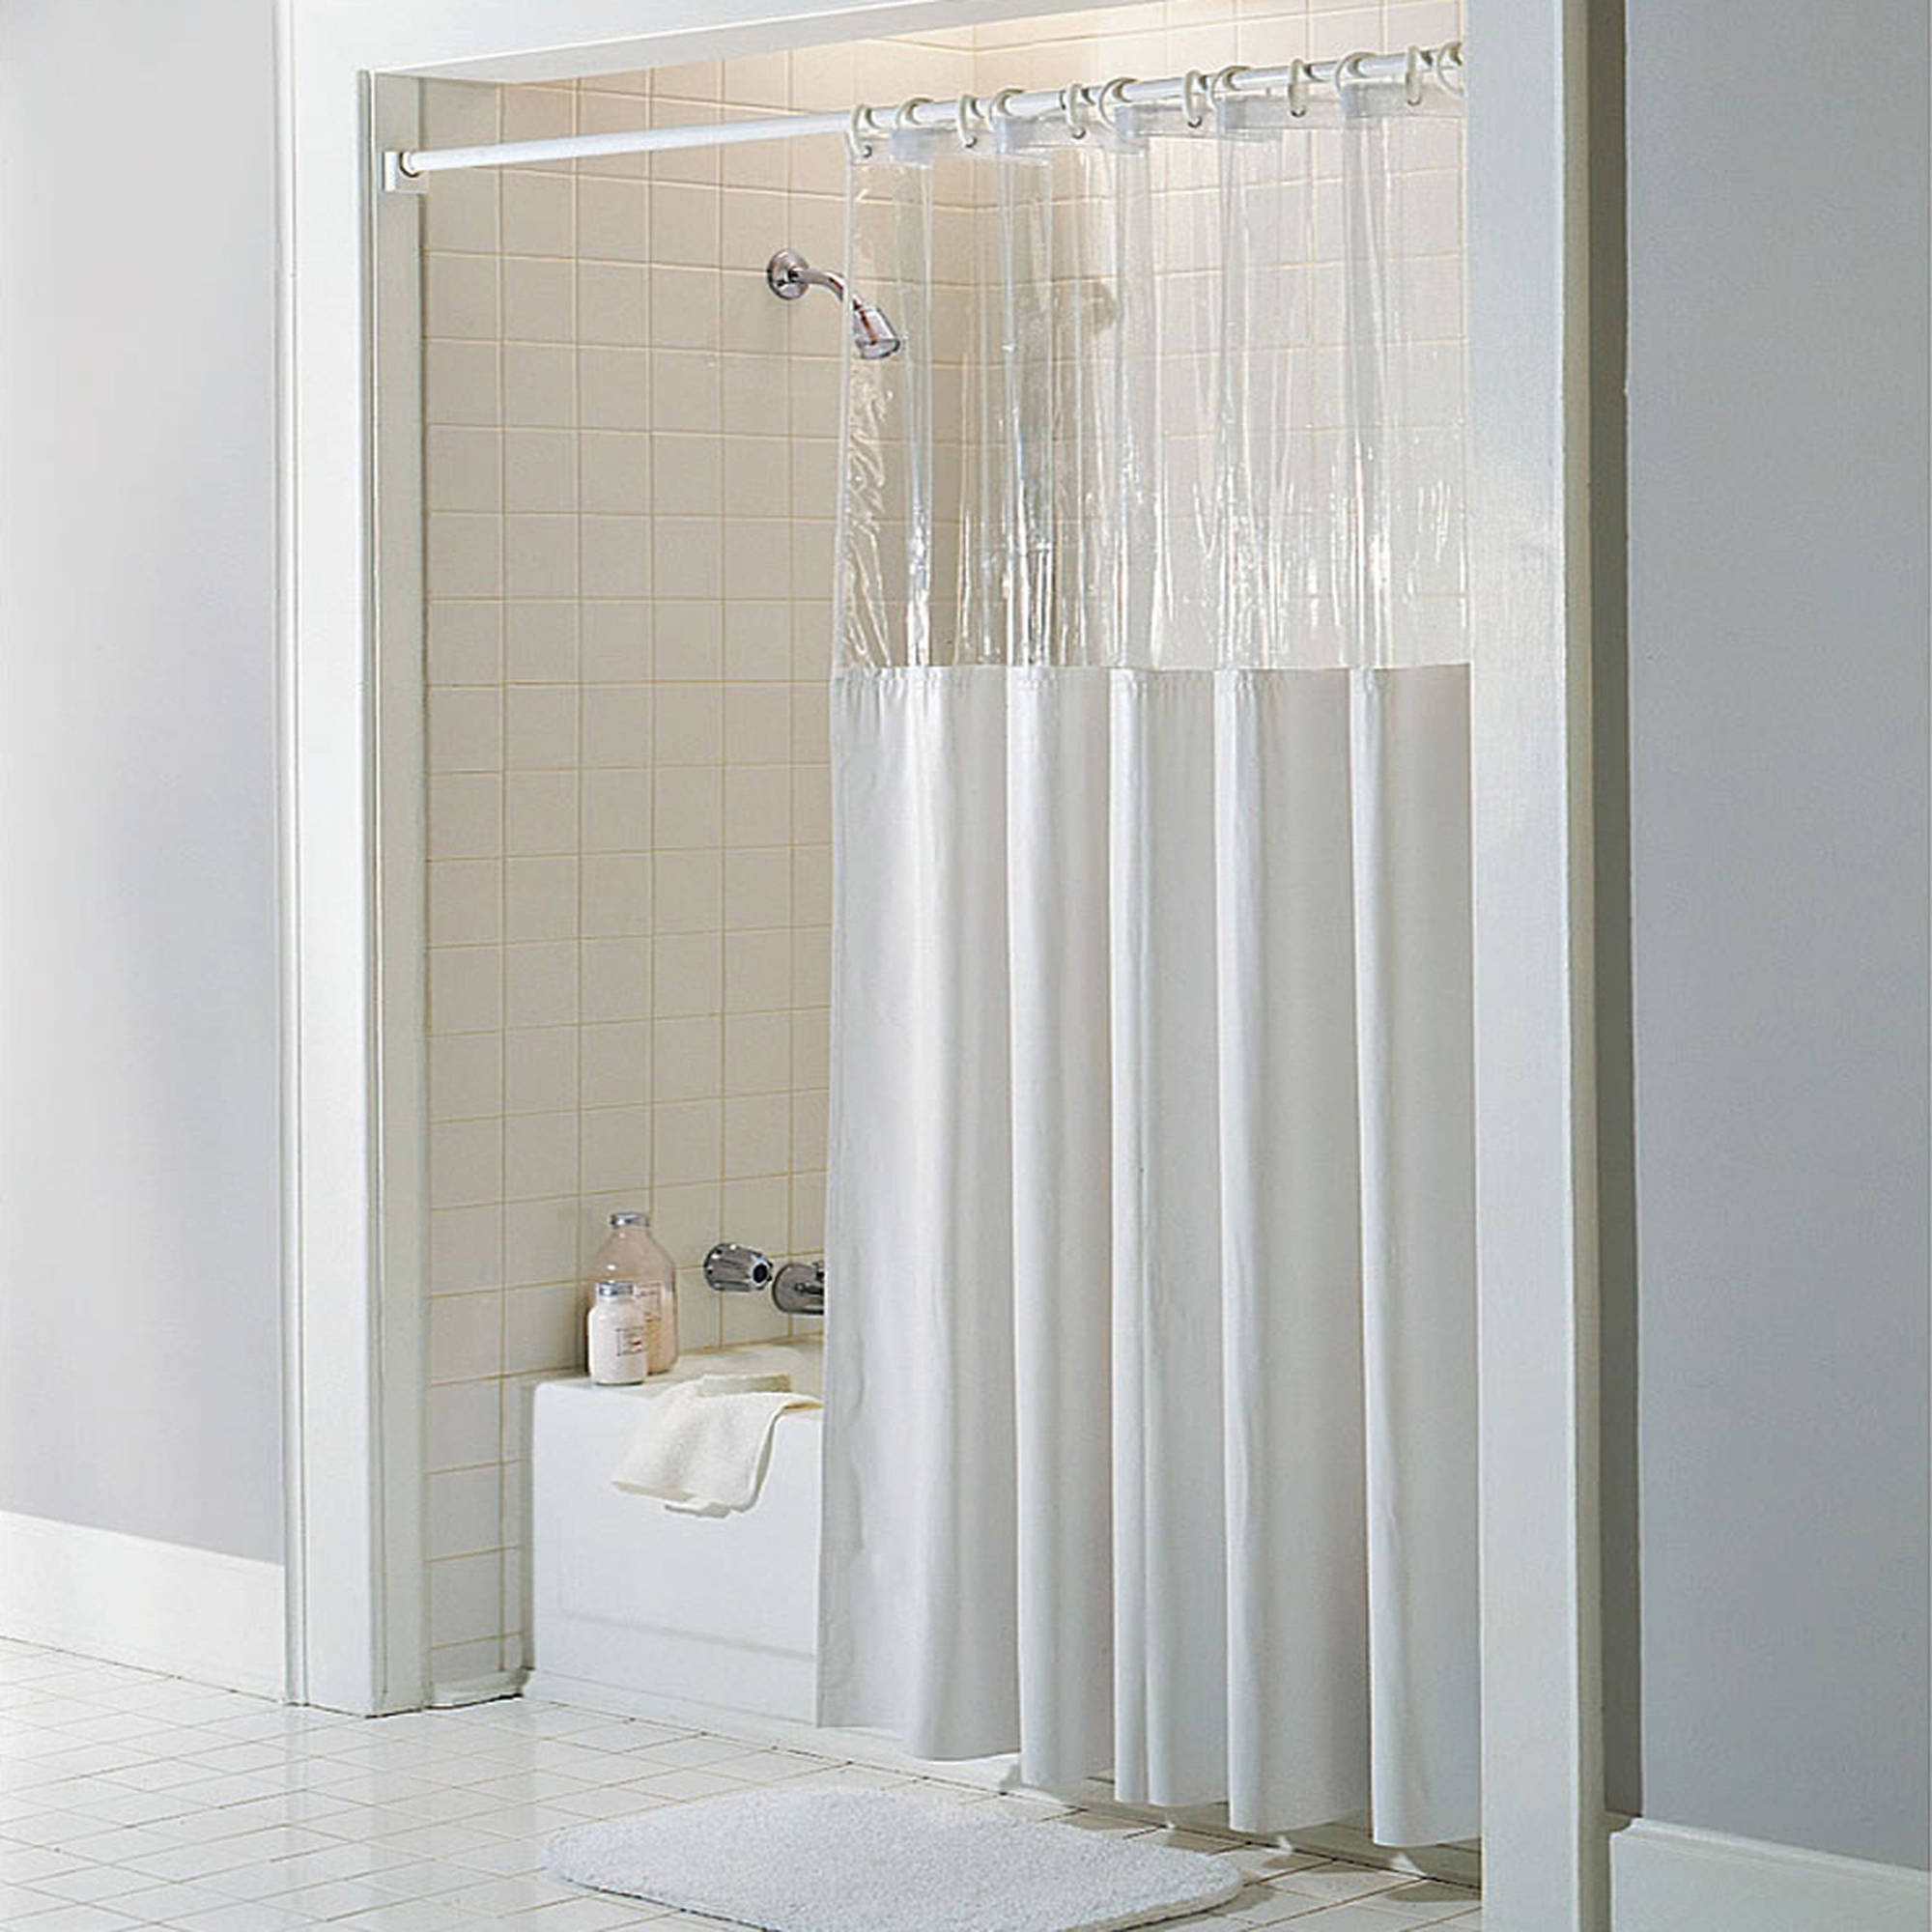 gray and curtains online yellow curtain igetfit how clean liner simple easy to moldy cleaning plastic shower